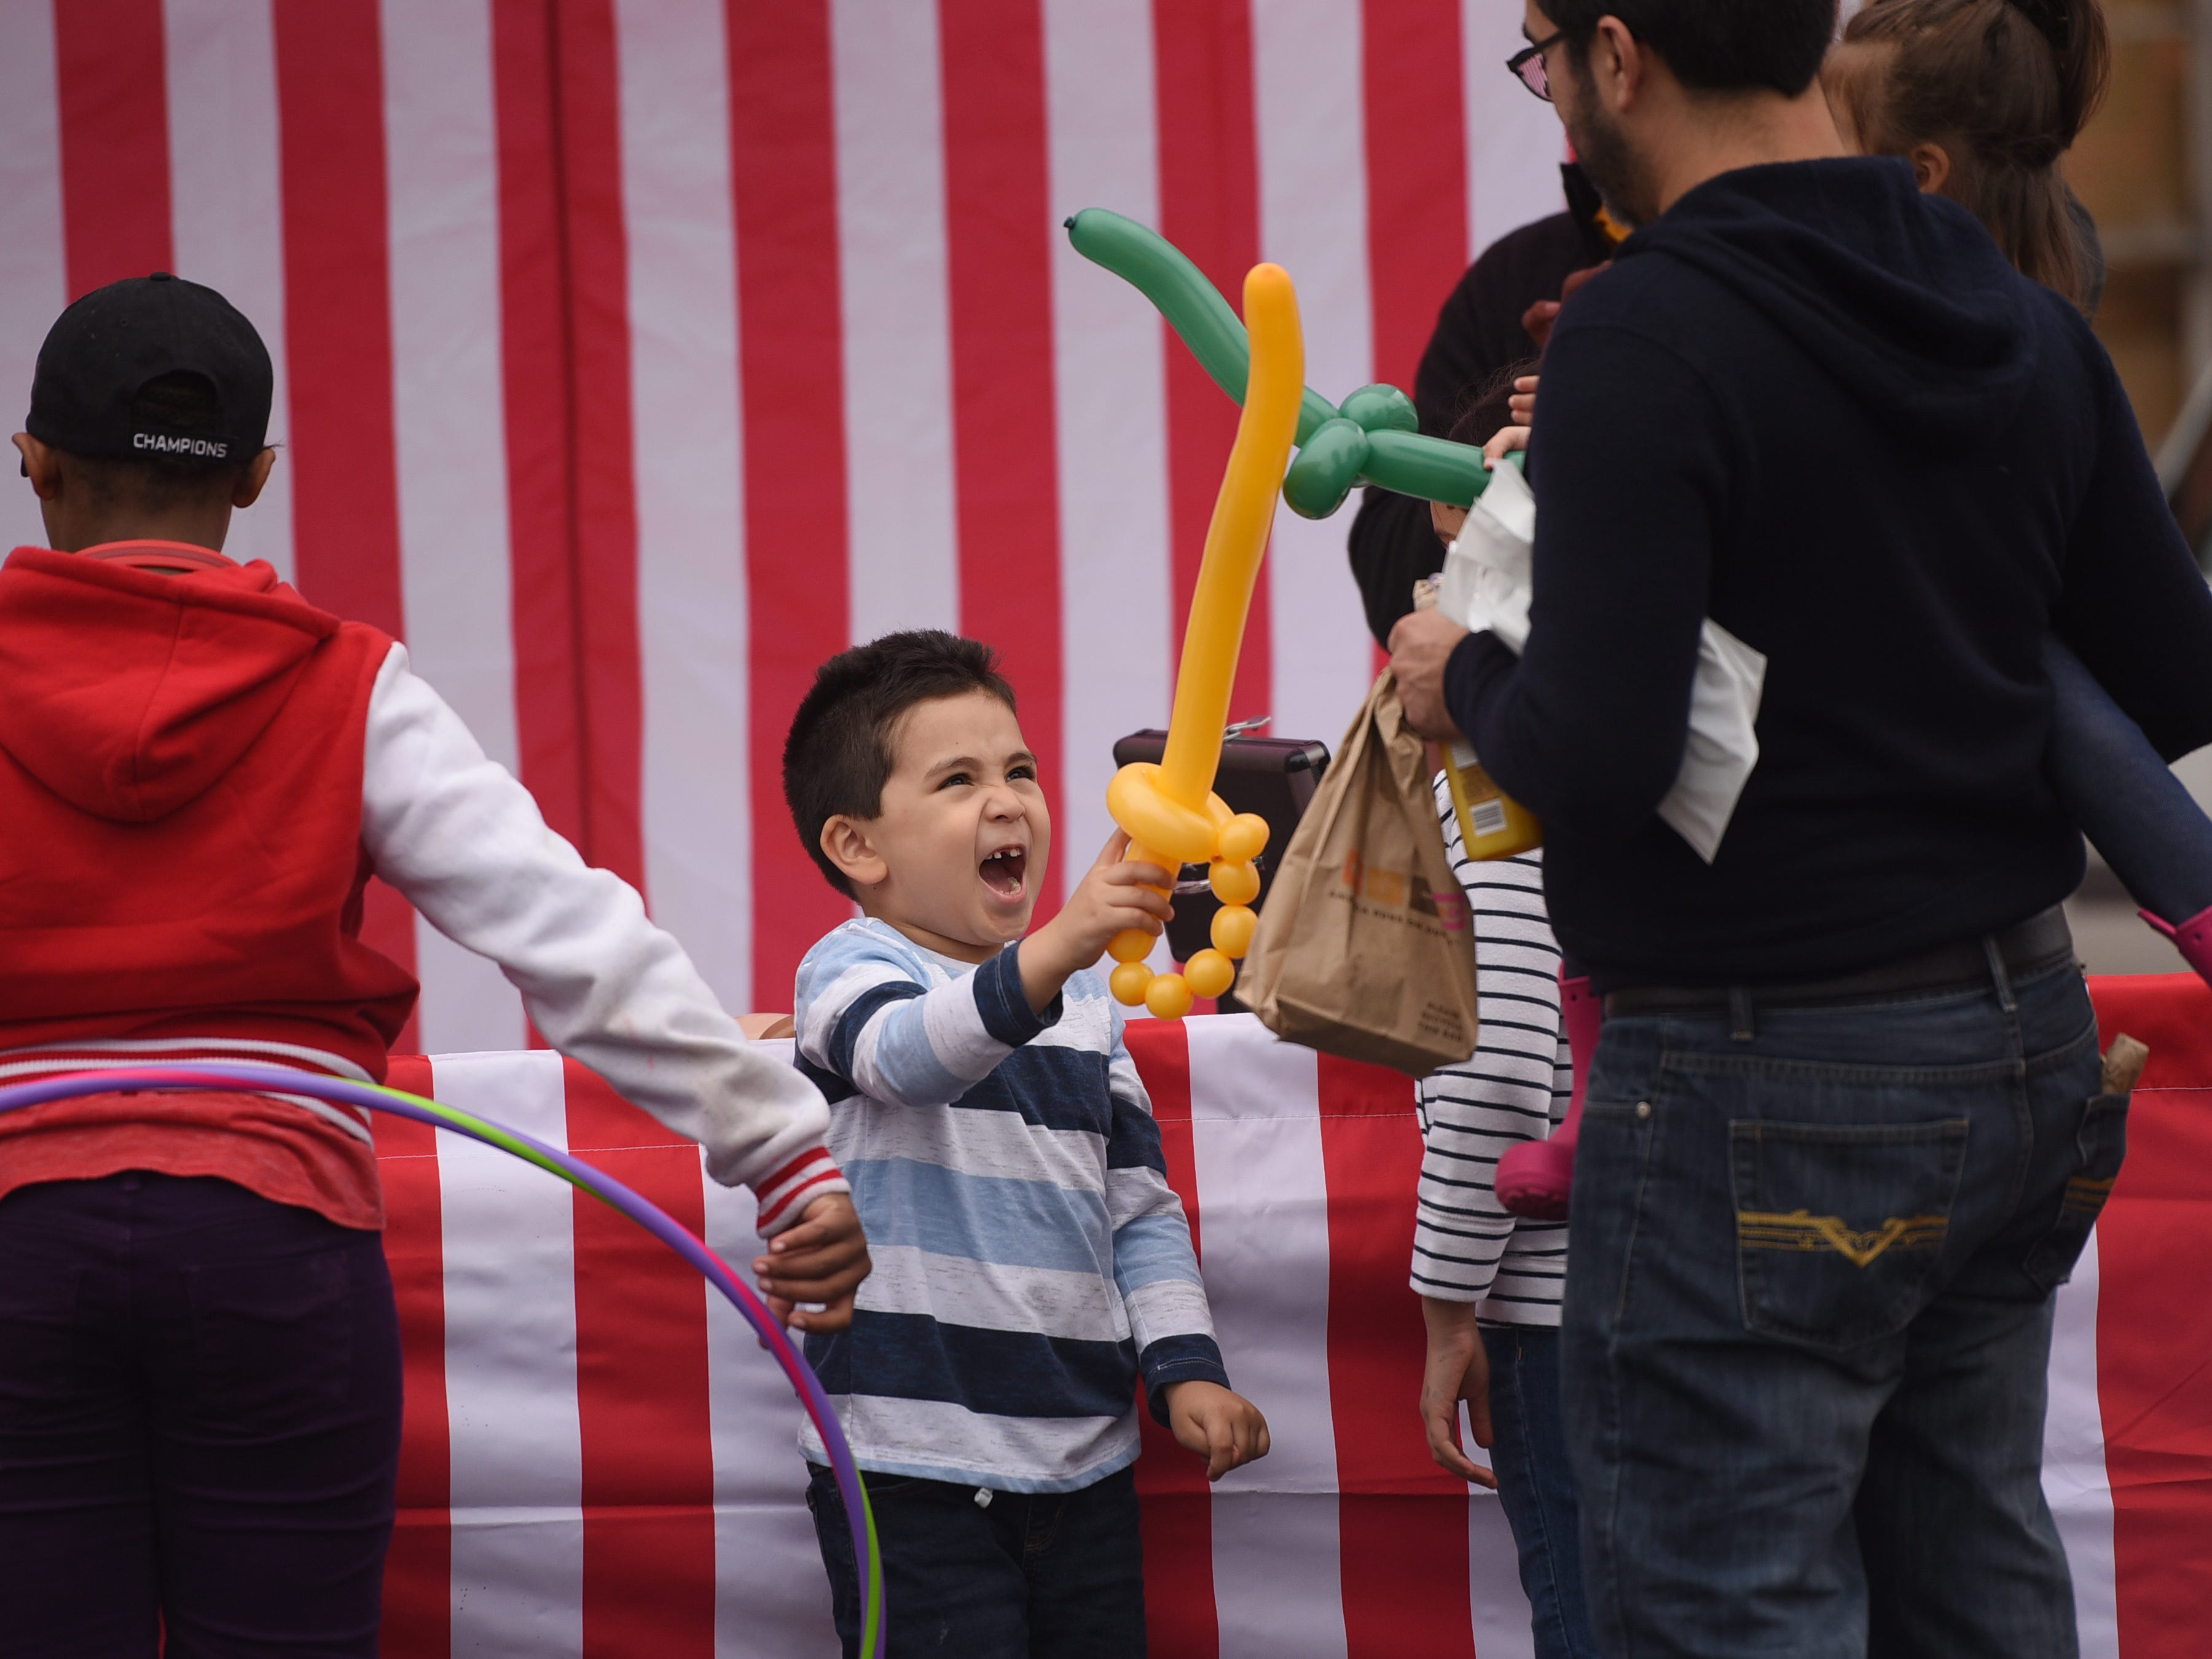 Hector Torres (age 5) of Hackensack shows his balloon sword to his father Jose (standing R) during the first annual Resource and Community Wellness Fair held by Buddies of NJ in Hackensack on 0923/18. The Buddies support people living with or affected by HIV/AIDS